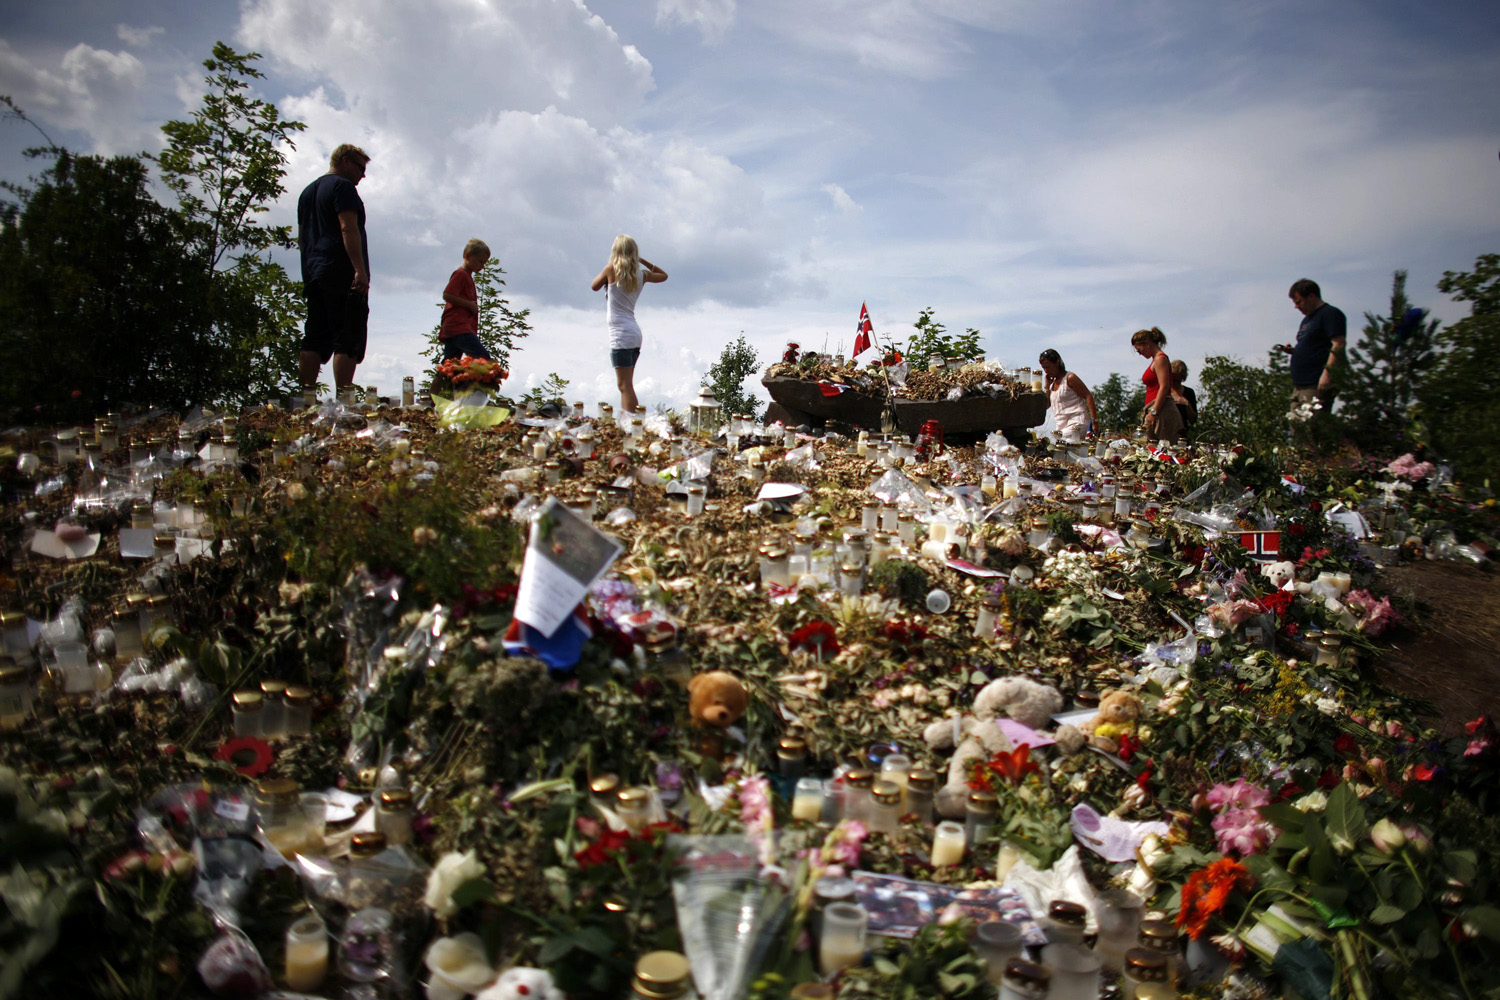 August 1, 2011. People stand on a memorial on the shore of Tyrifjorden lake overlooking Utoeya island in Norway, where anti-Islam extremist Anders Behring Breivik killed 68 people in a shooting rampage in July.